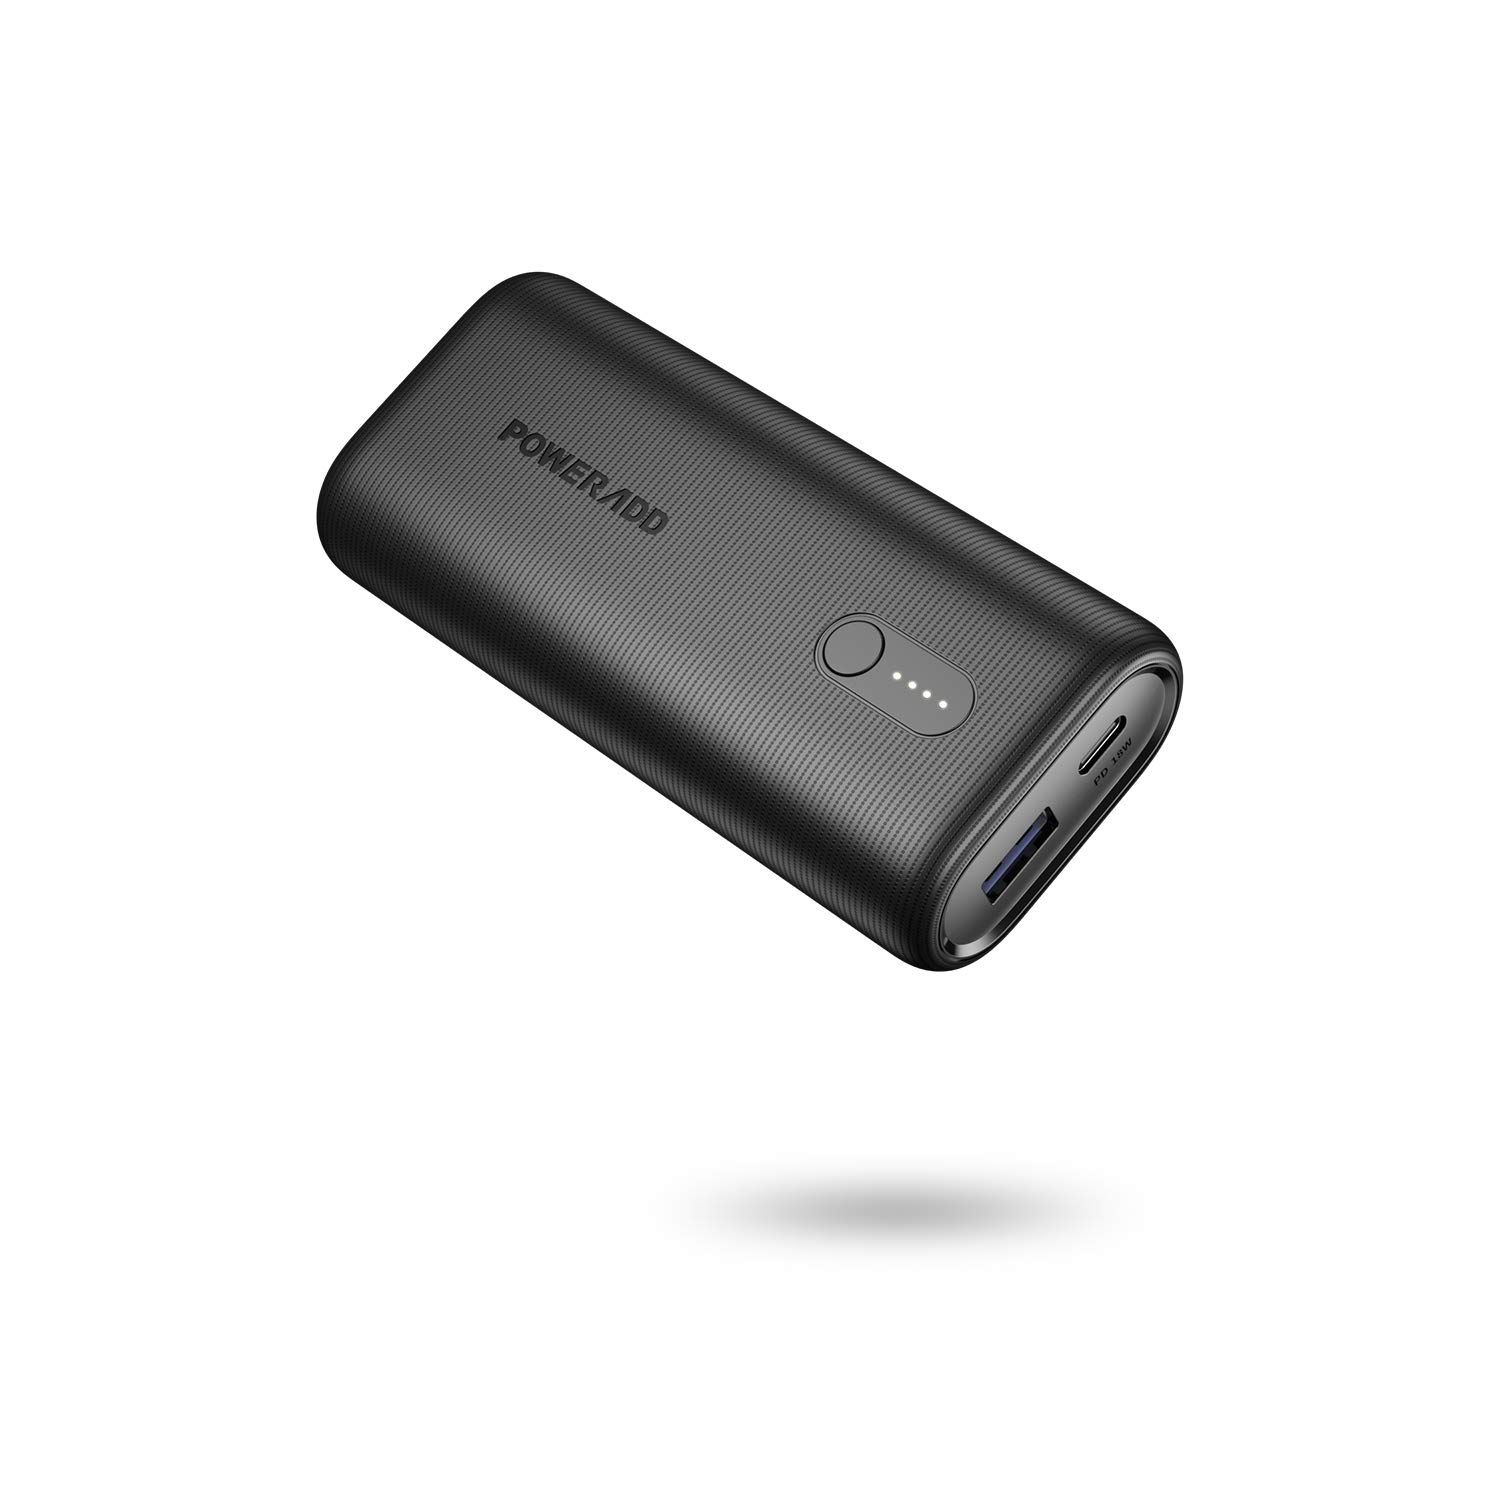 Poweradd EnergyCell PD 10000mah Power Bank USB-C Power Delivery (18W) Power Bank Quick Charging Universal Compatiblity for Various Smartphones and Tablets